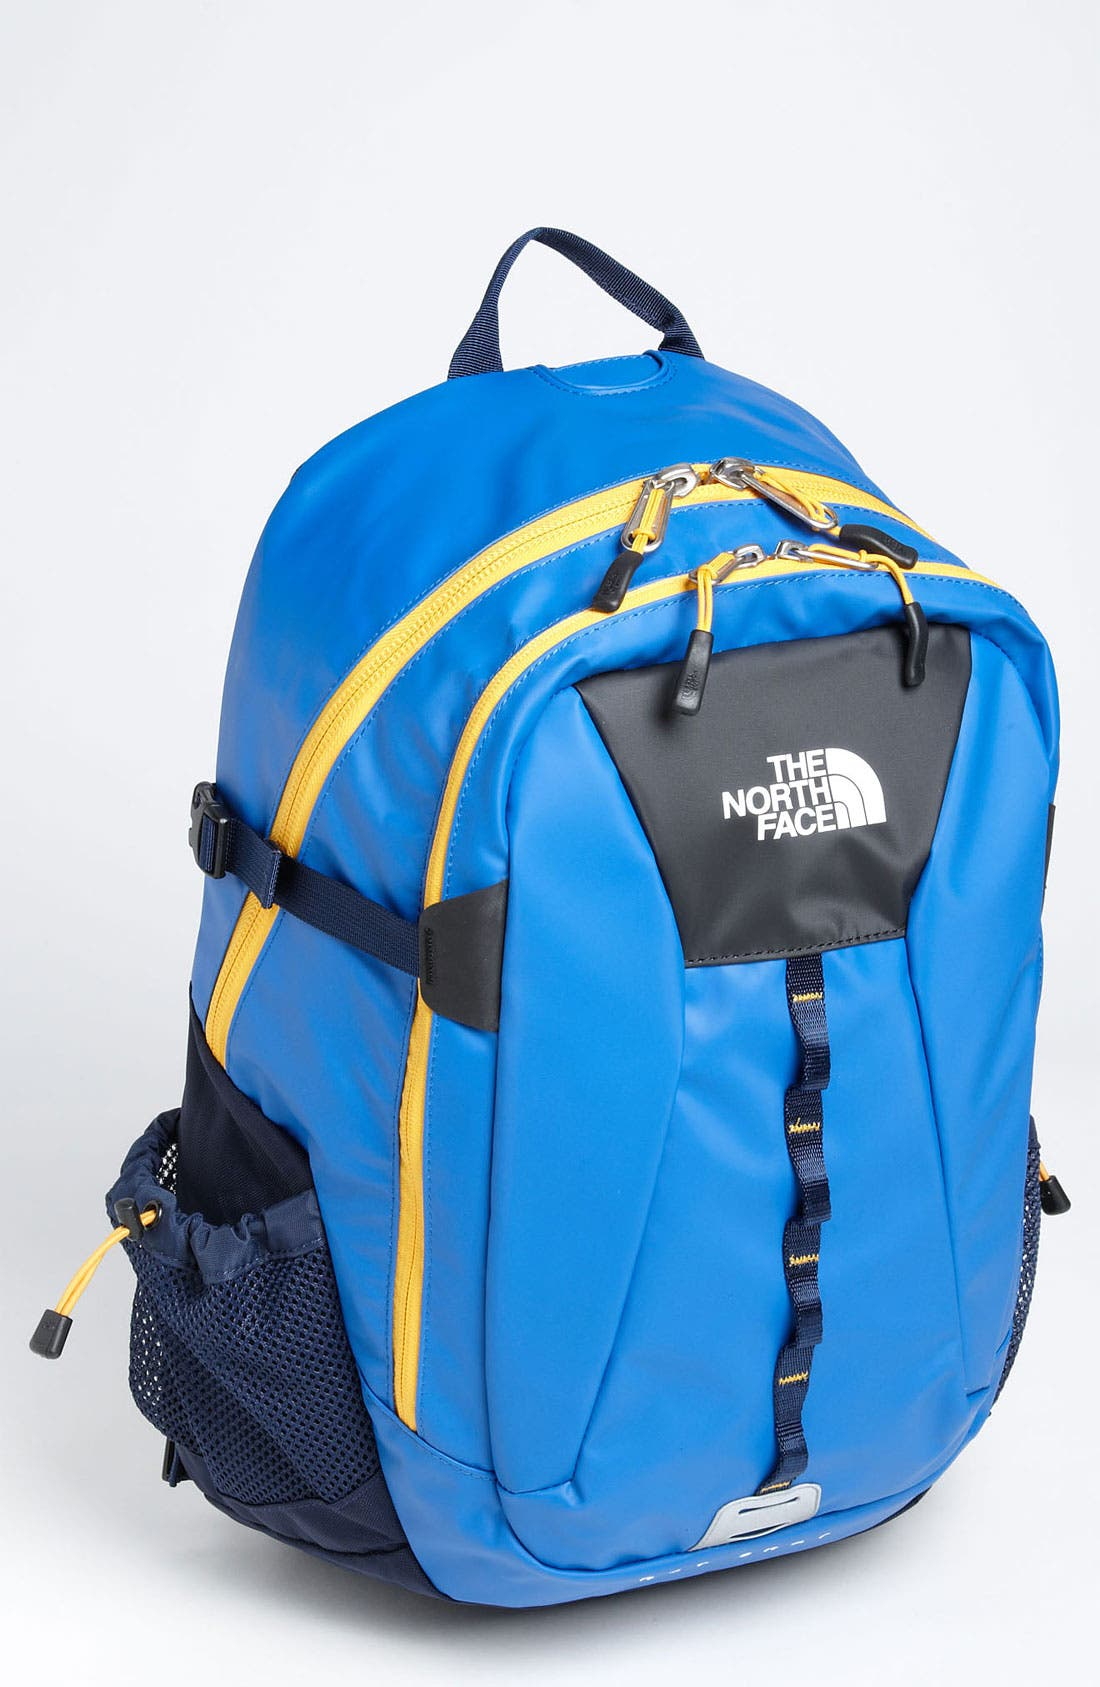 Alternate Image 1 Selected - The North Face 'Base Camp Hot Shot' Backpack